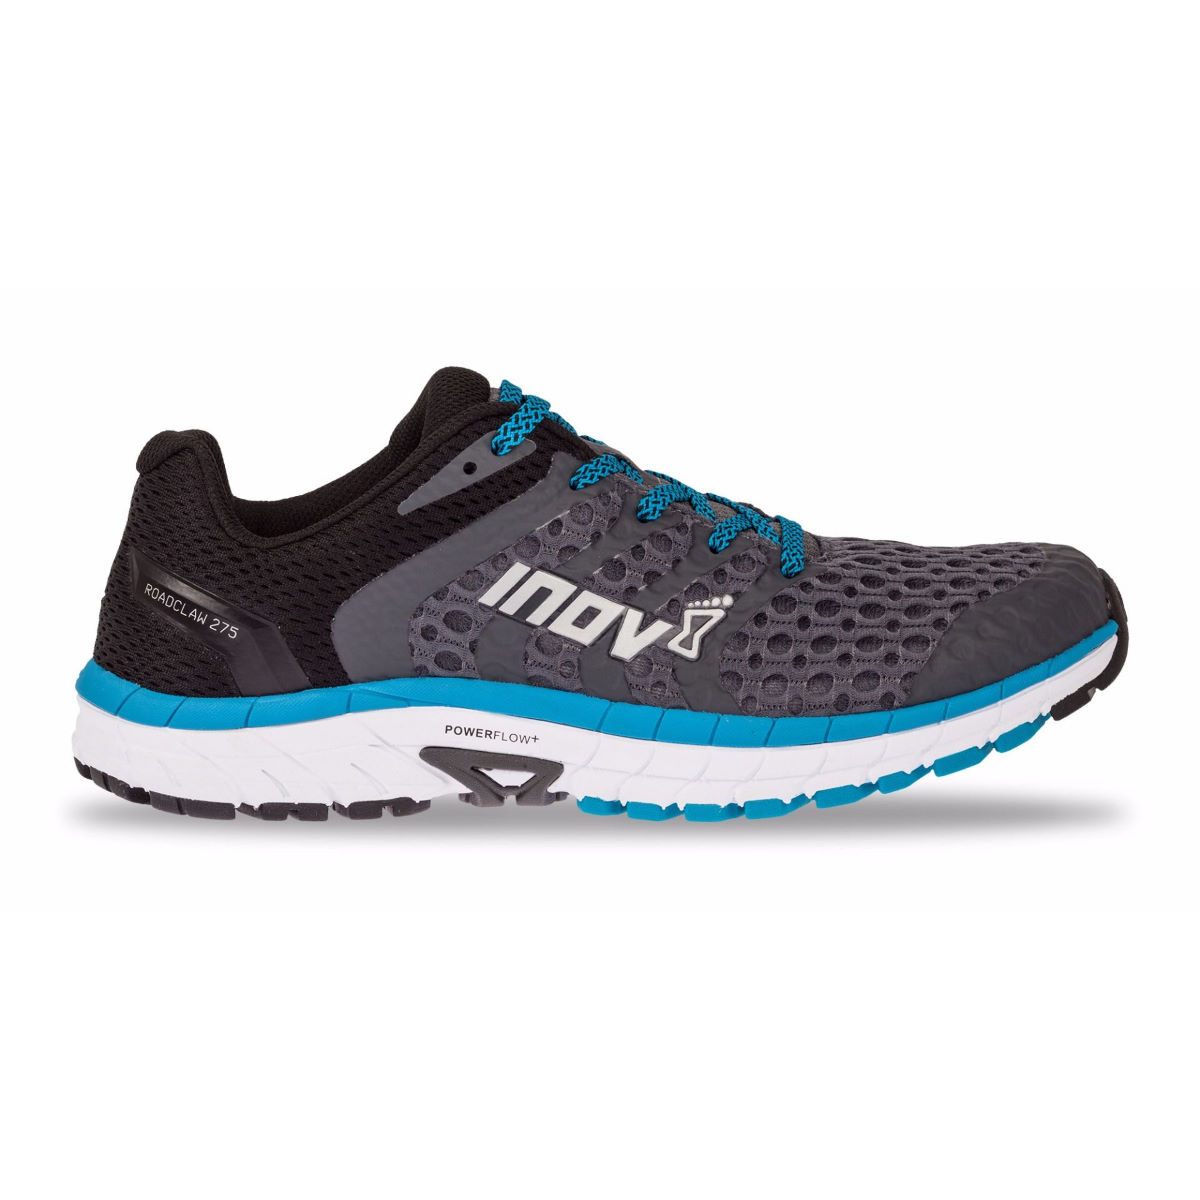 Chaussures Inov-8 Roadclaw 275 v2 - UK 11 GREY/BLUE